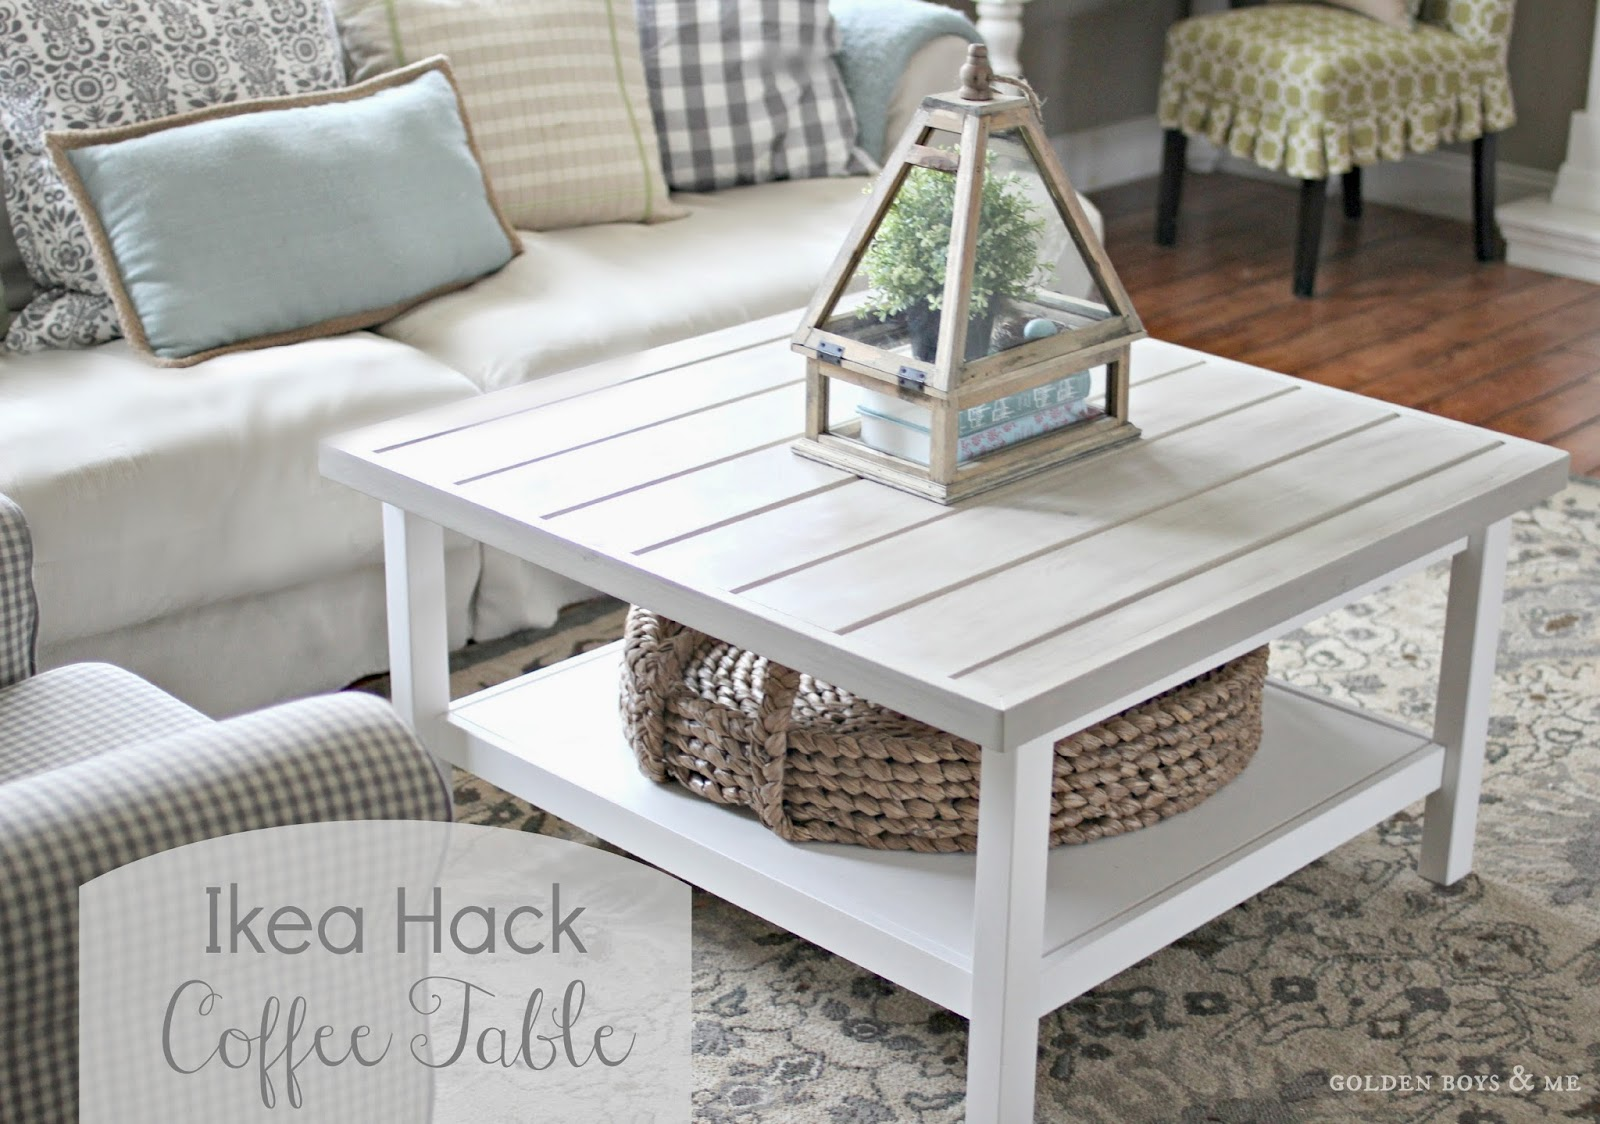 Ikea Hack Hemnes Coffee Table With Planked Top Www Goldenboysandme